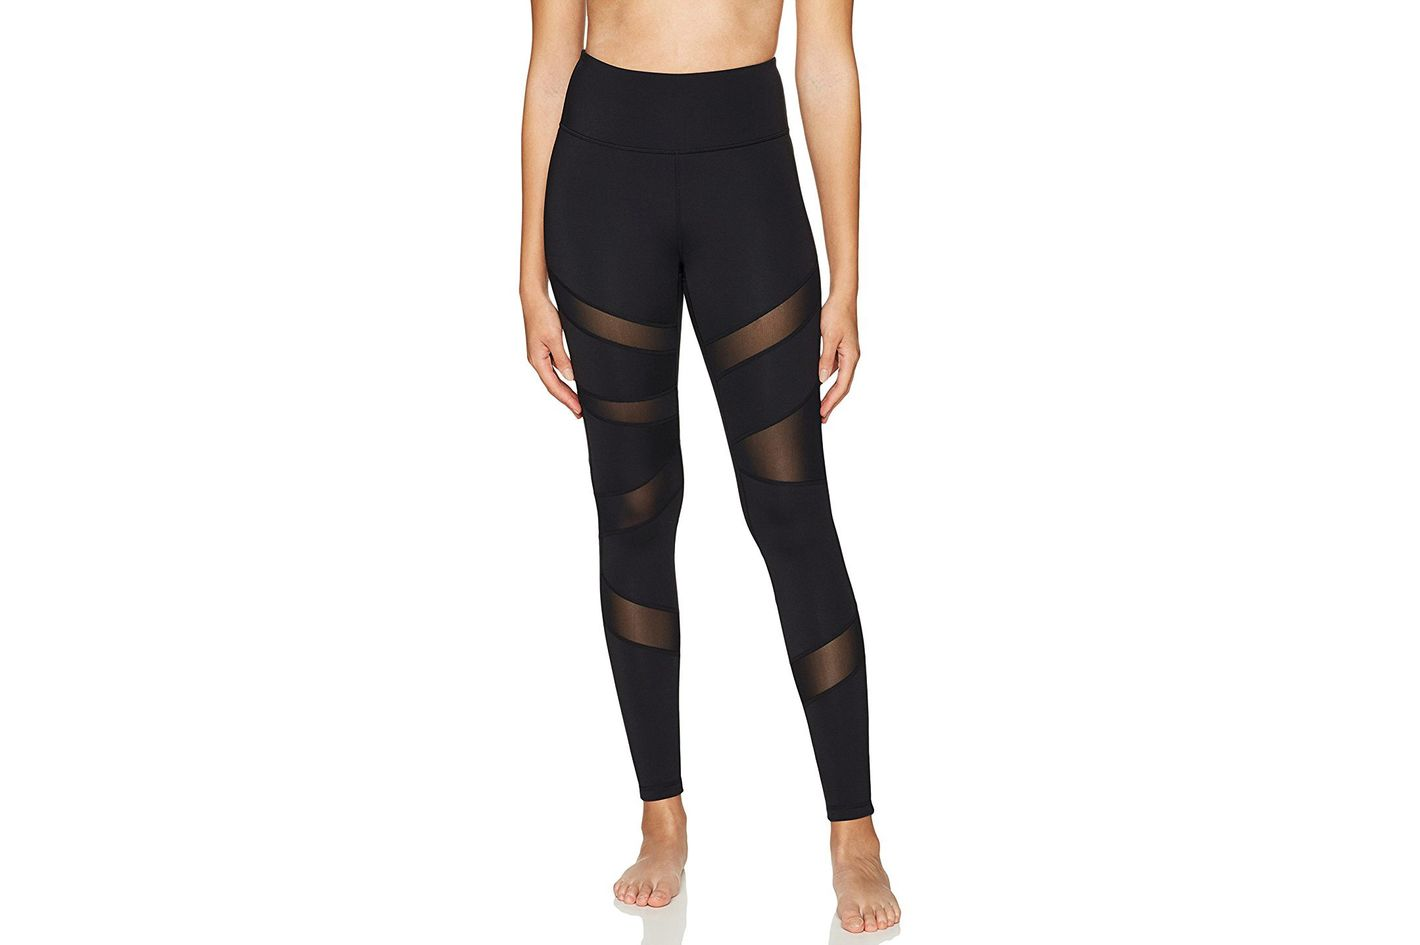 Core 10 Women's Icon Series - The Warrior Tight